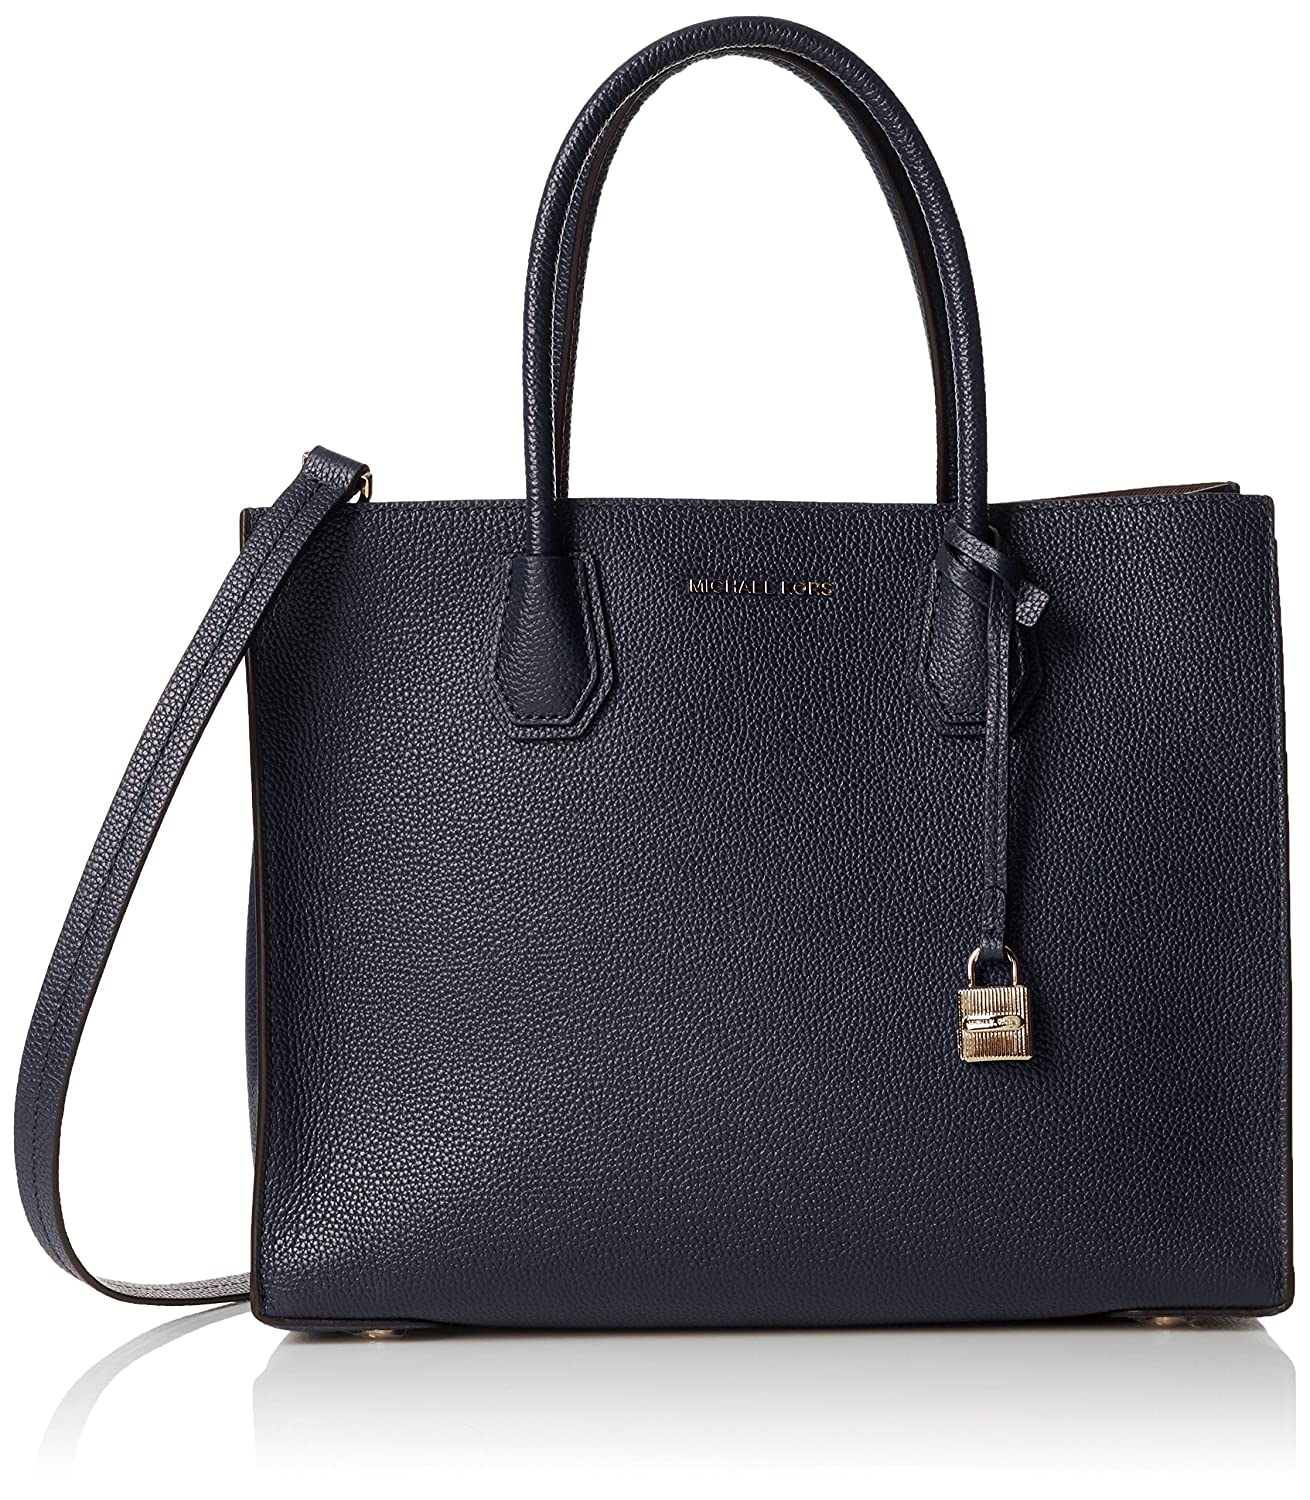 79afb1b2a48a ... Gallery MICHAEL Michael Kors Womens Mercer Tote, Admiral, One Size  Handbags Amazon.